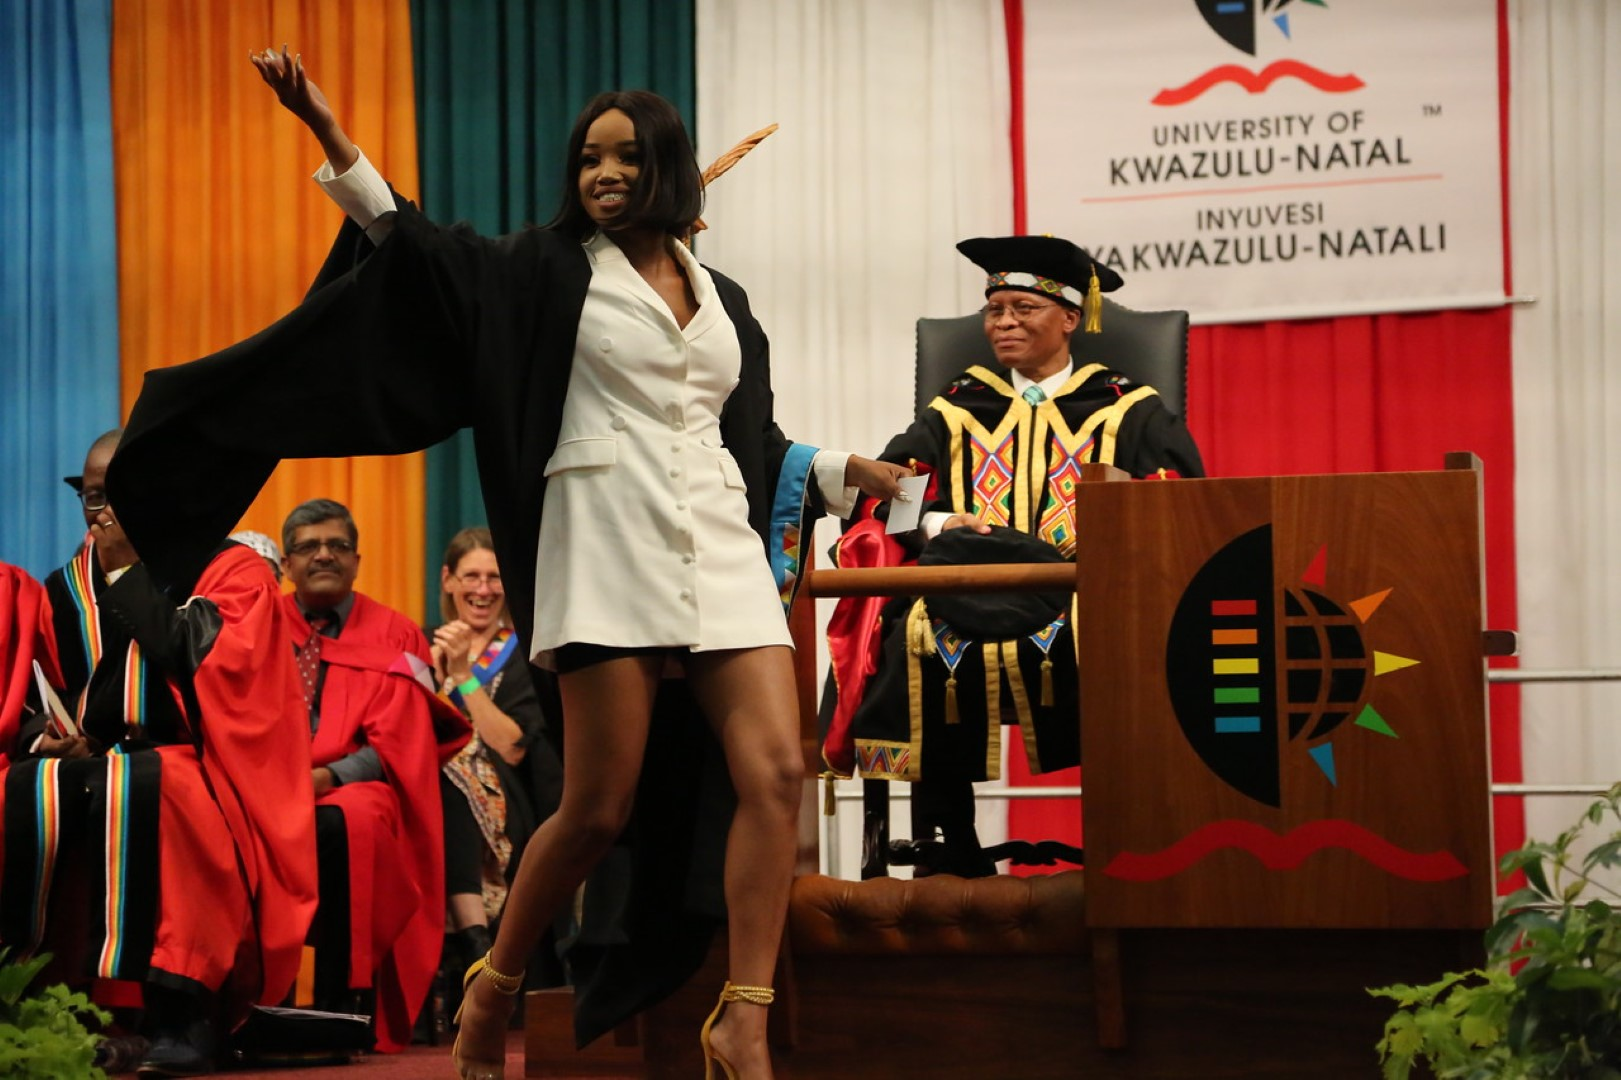 Proud to be a UKZN graduate